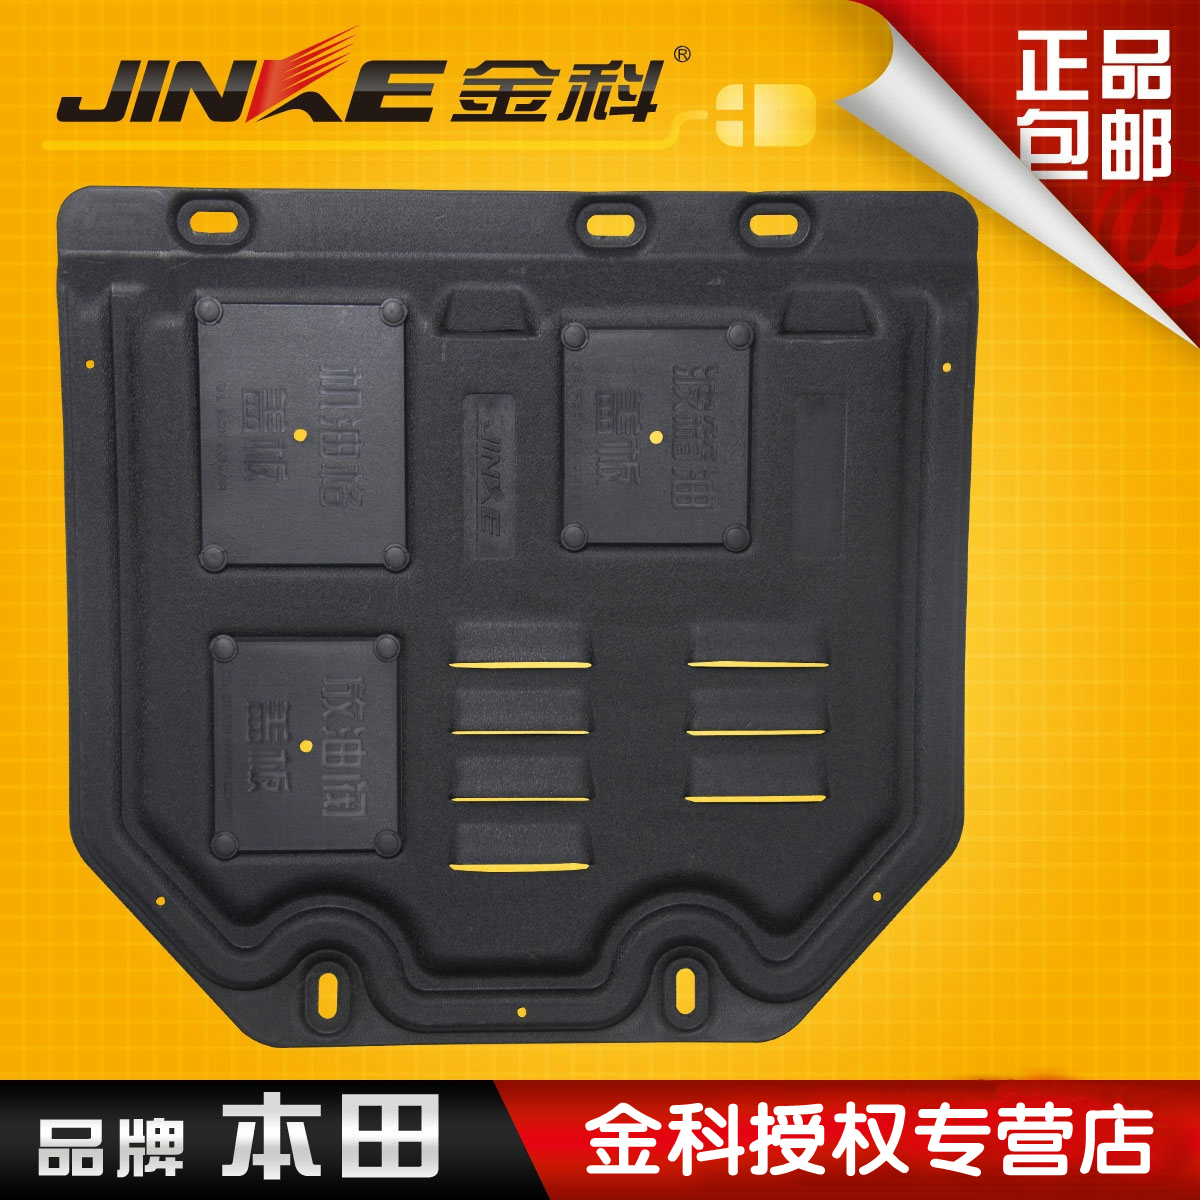 Jinke 15 paragraph 14 accord odyssey bin chi xrv geshitu skid plate under the engine chassis shield